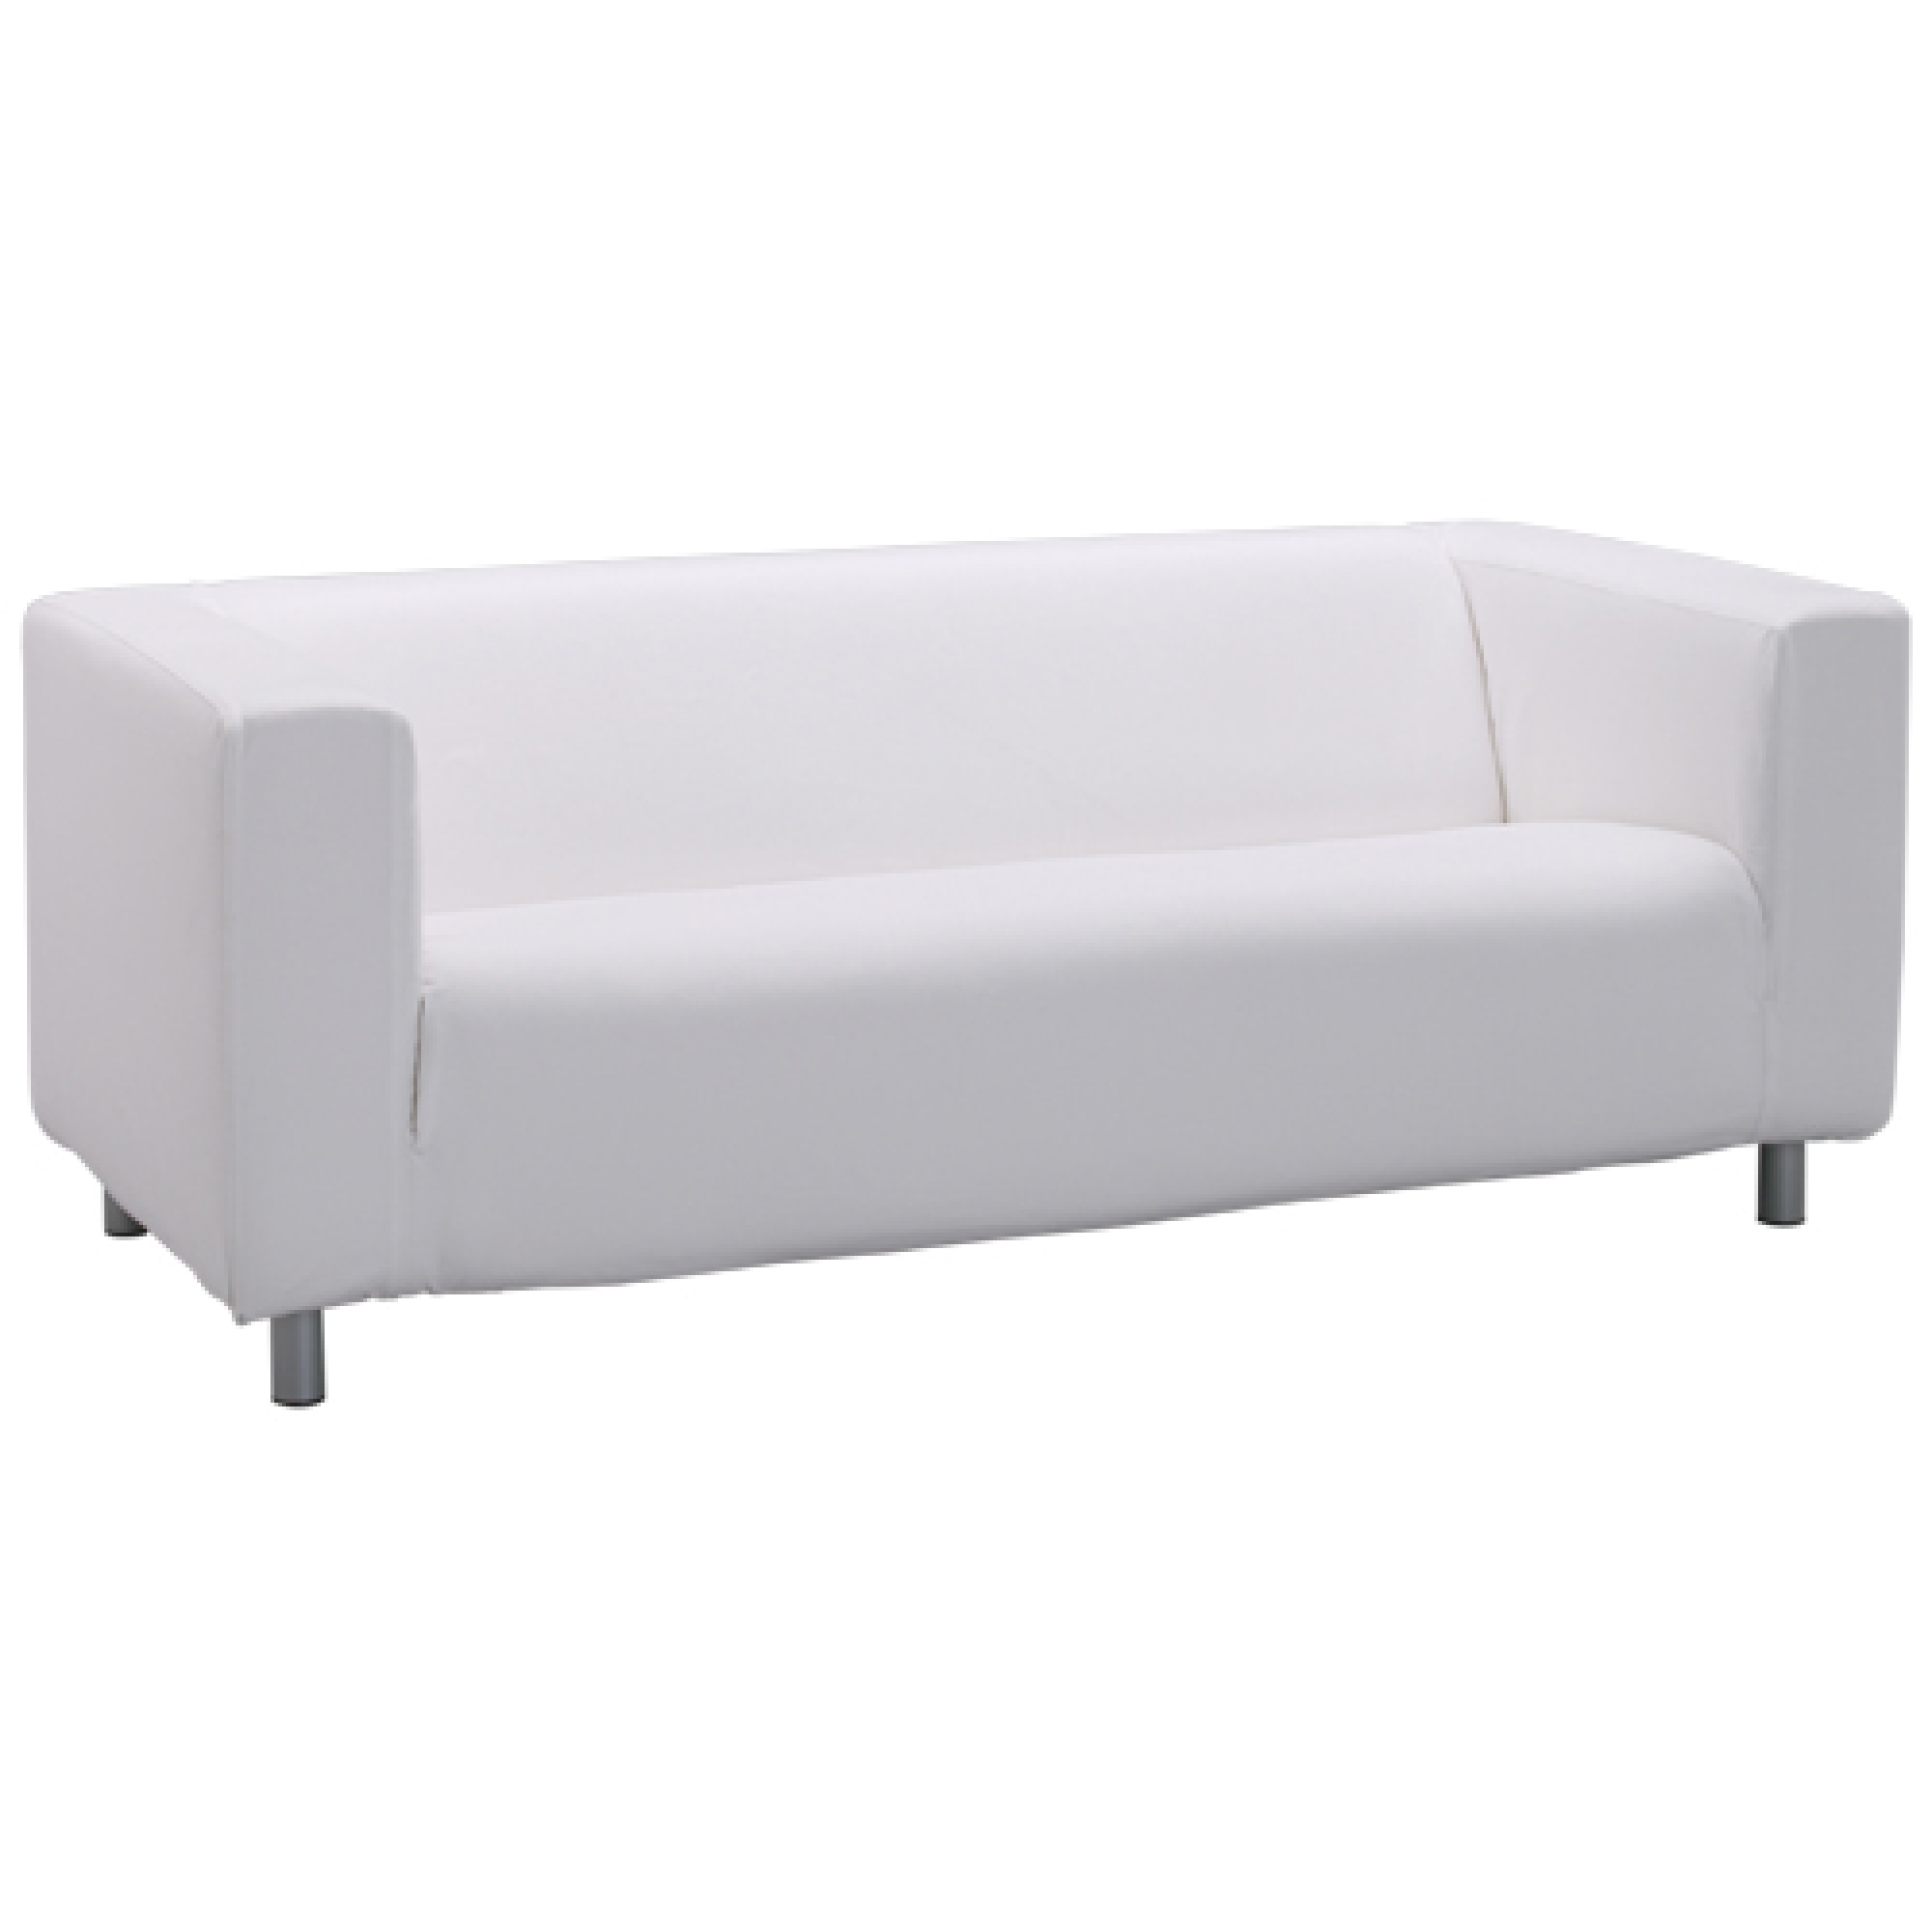 KLIPPAN two-seat sofa frame